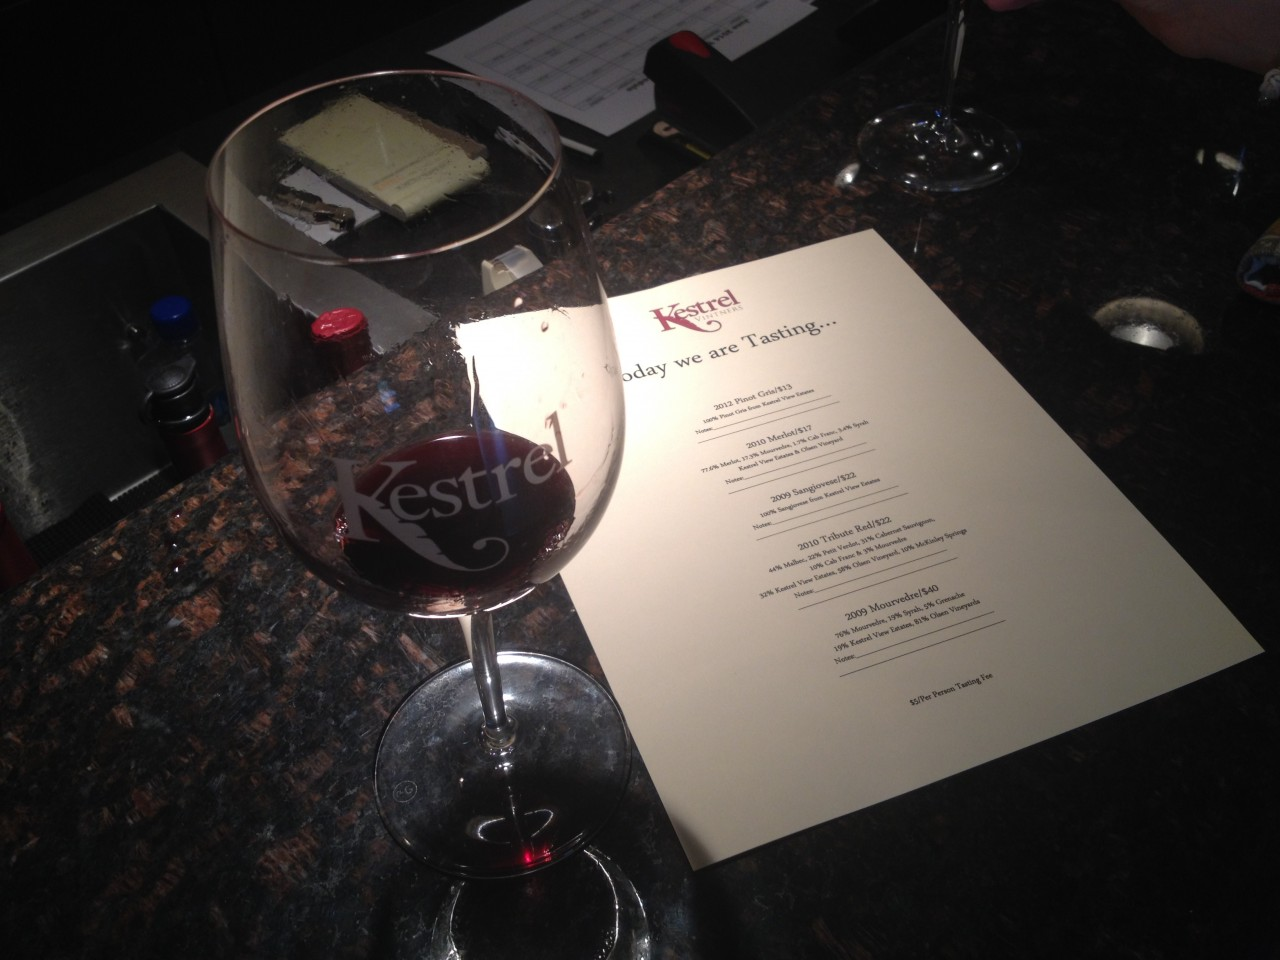 Kestrel wine tasting menu